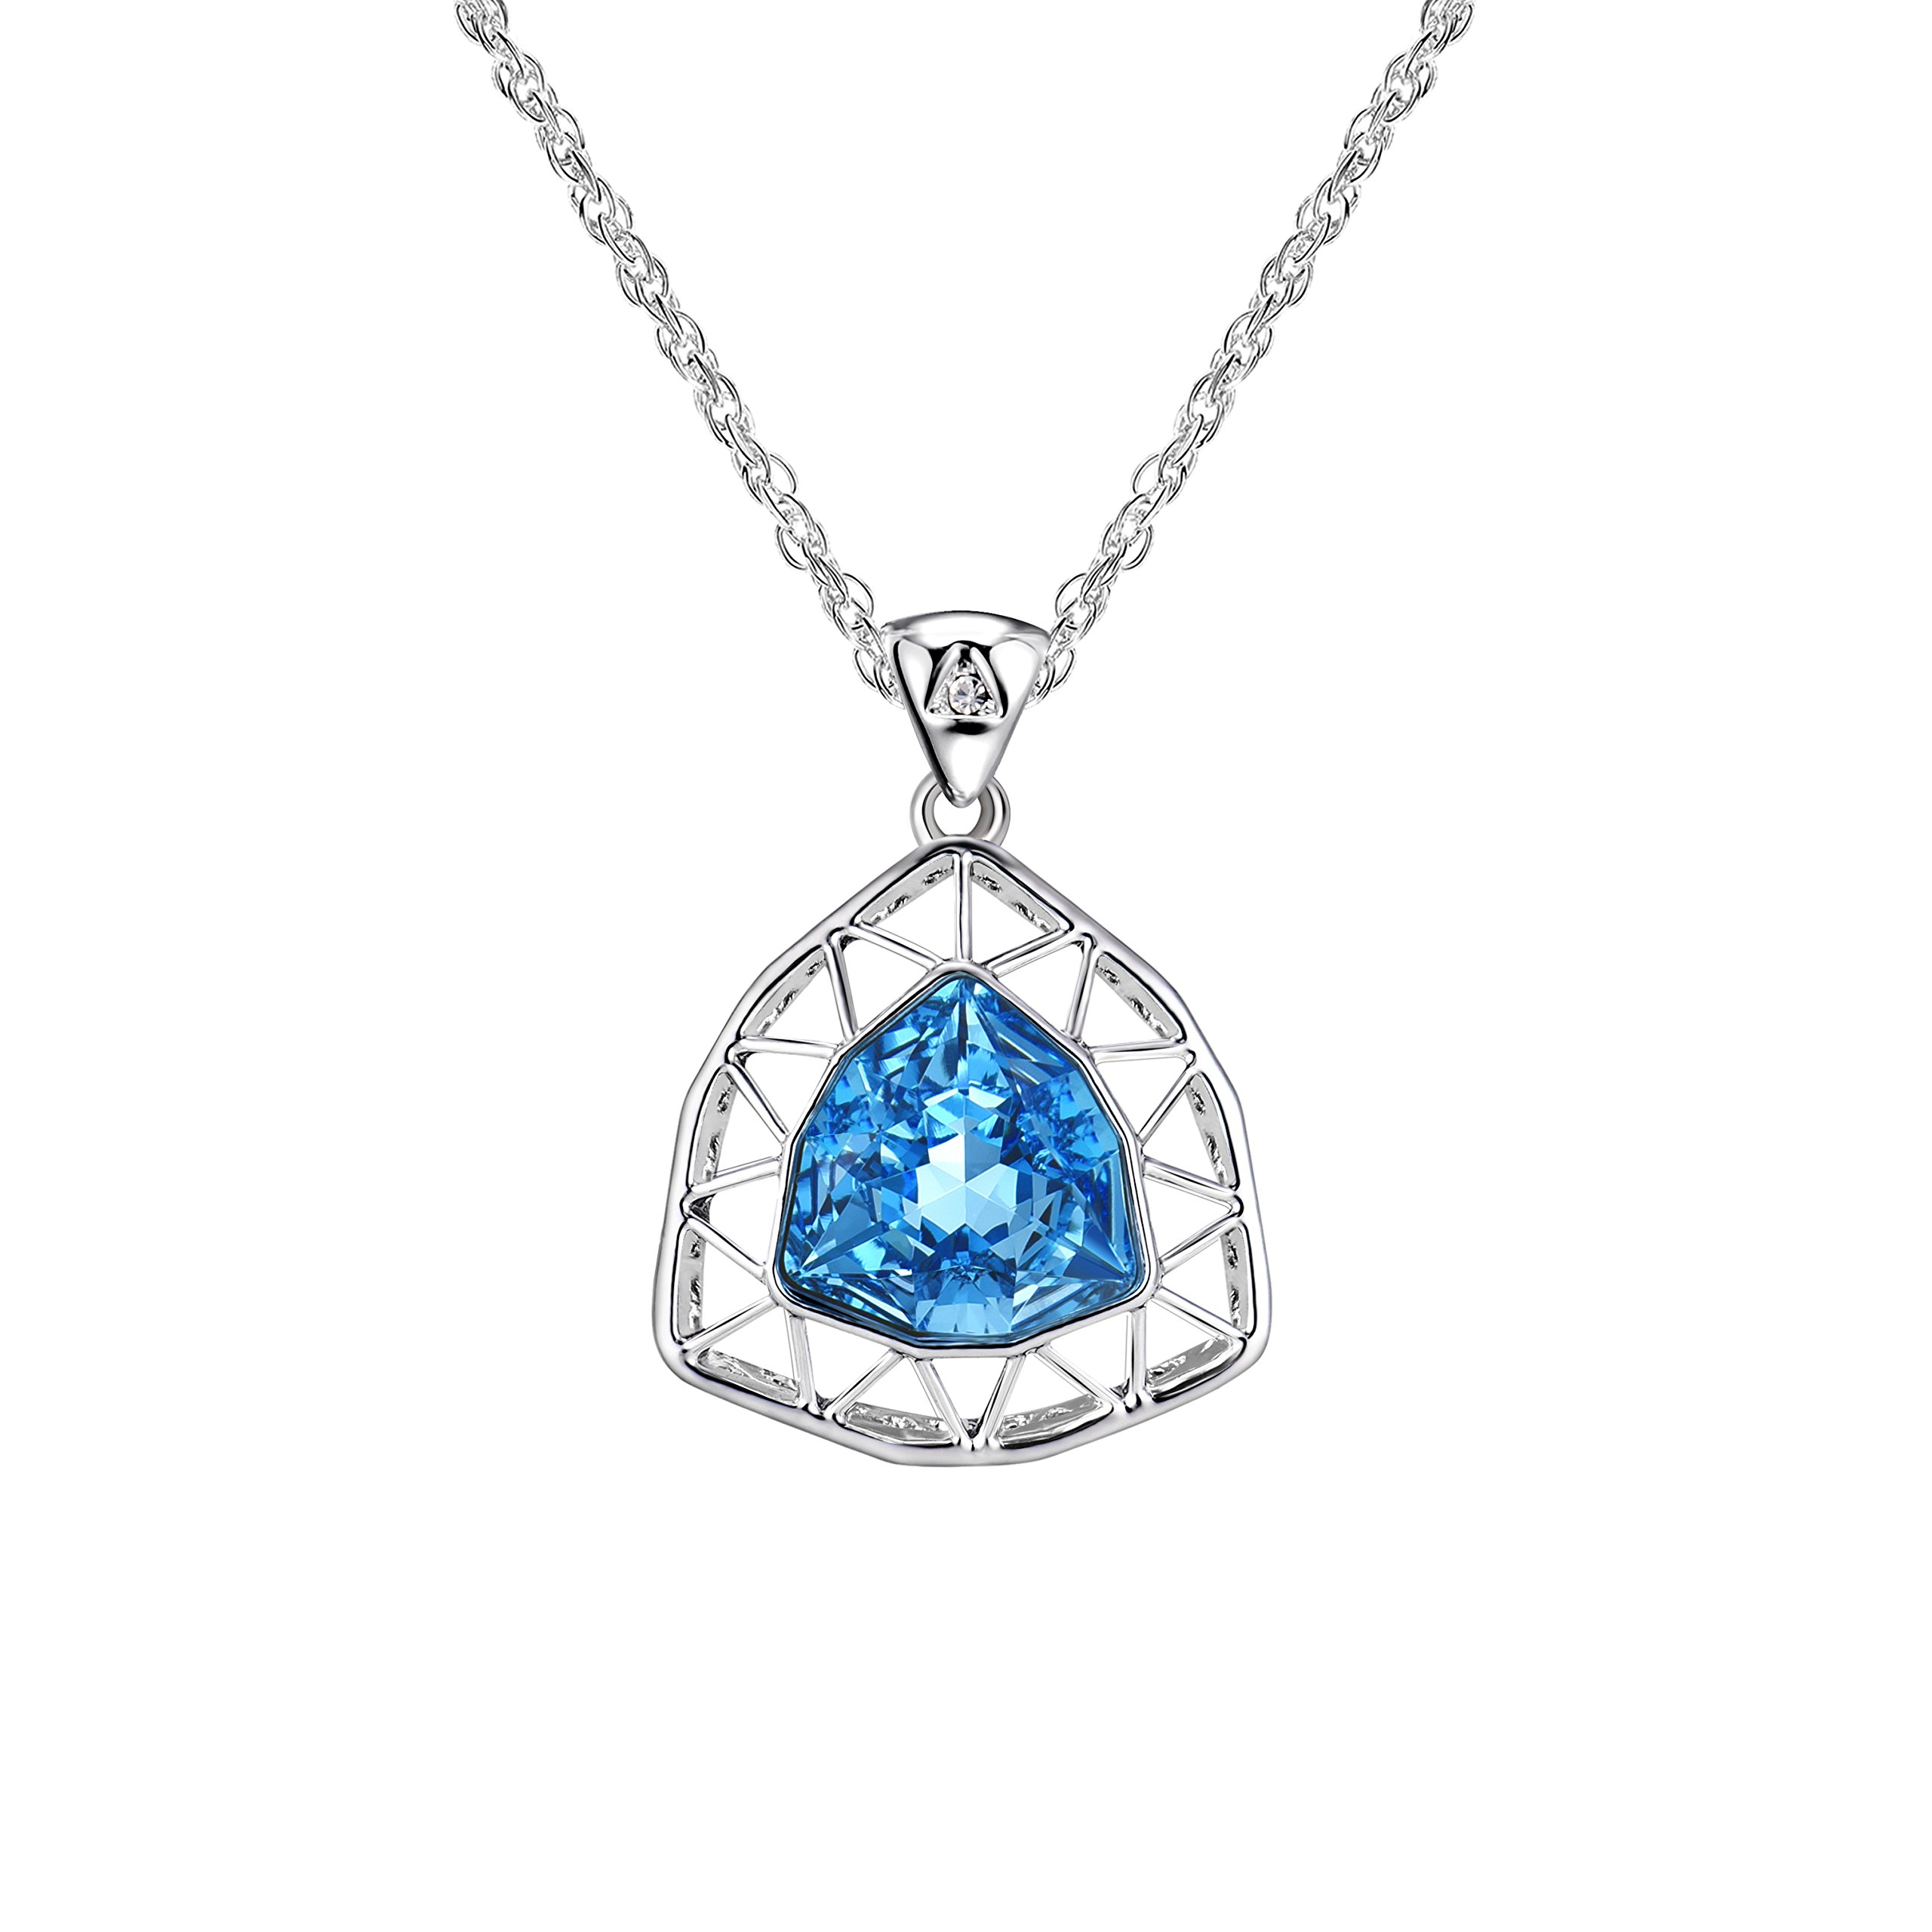 Alantyer Summer Birthstone Necklace Made with Swarovski Crystal, Jewelry for Women, Best Mother's Day (Aquamarine)